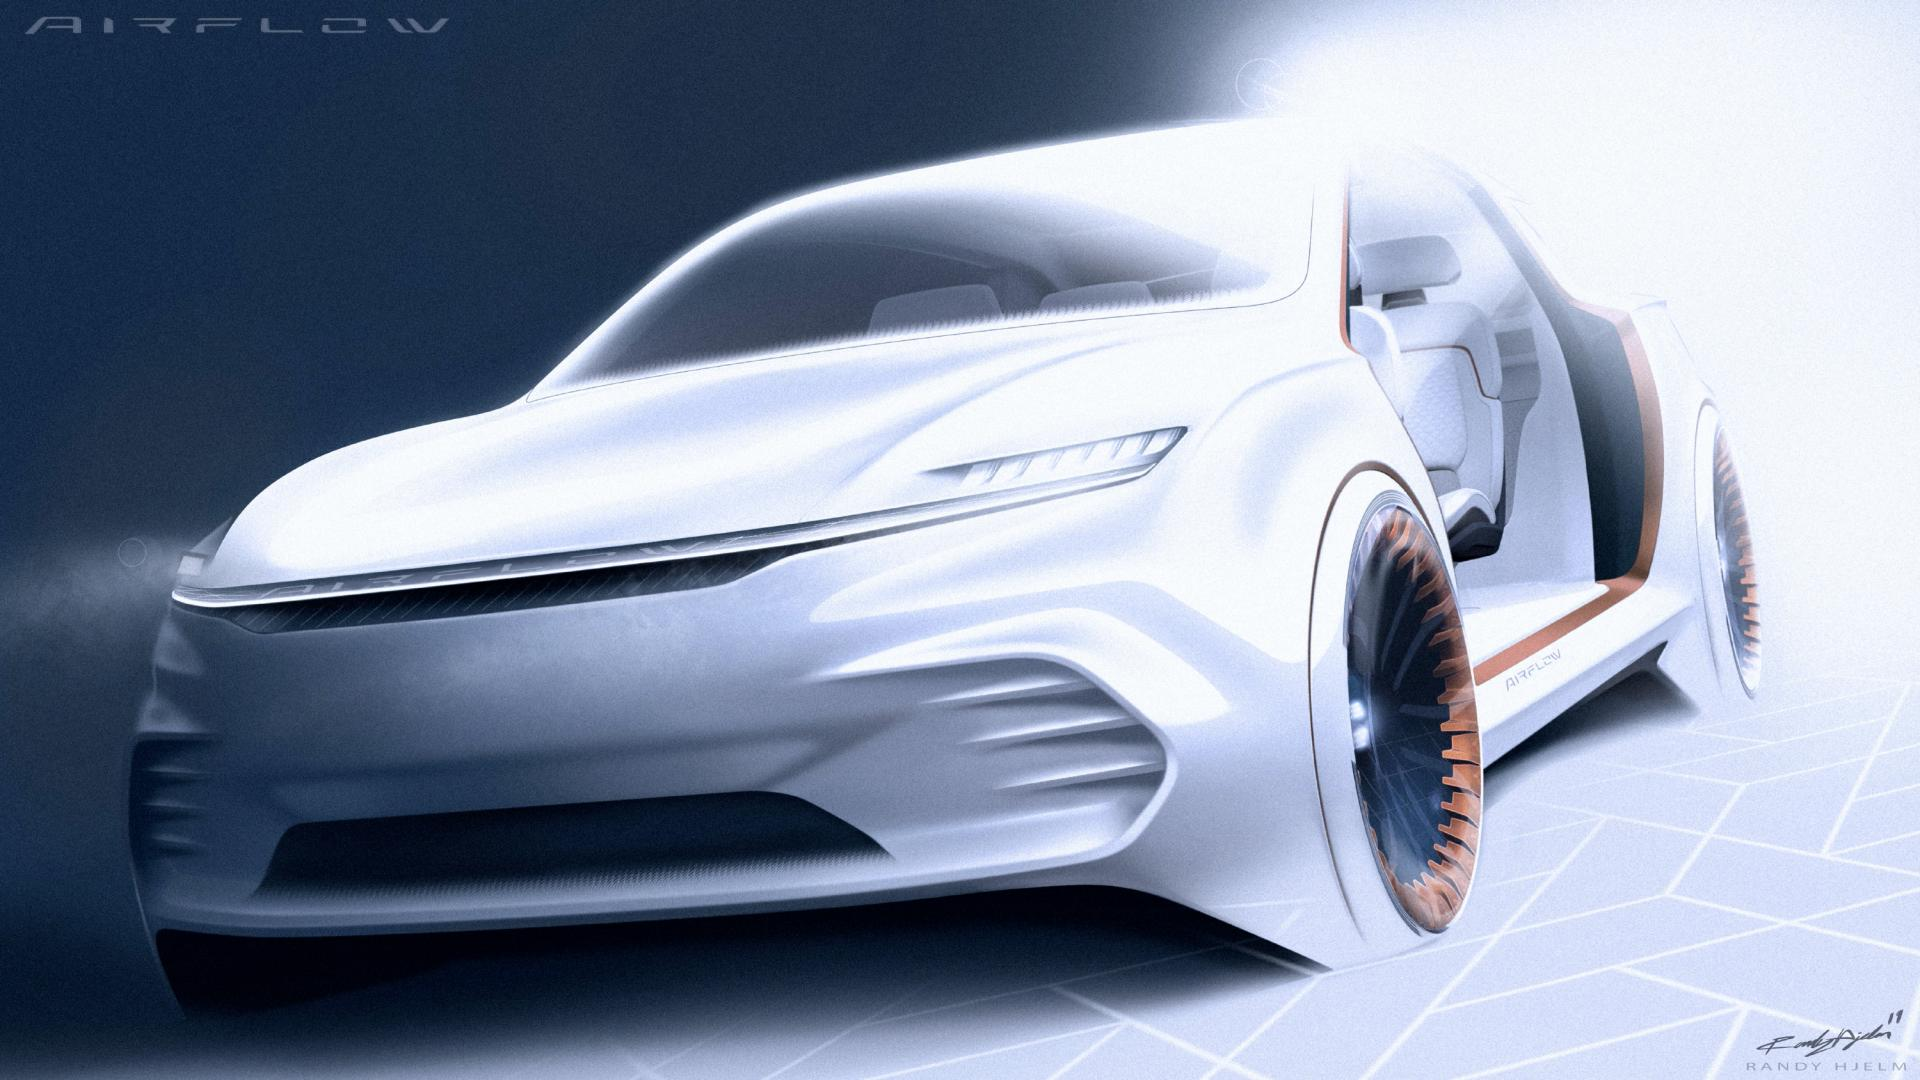 2020-Chrysler-Airflow-Vision-concept-2